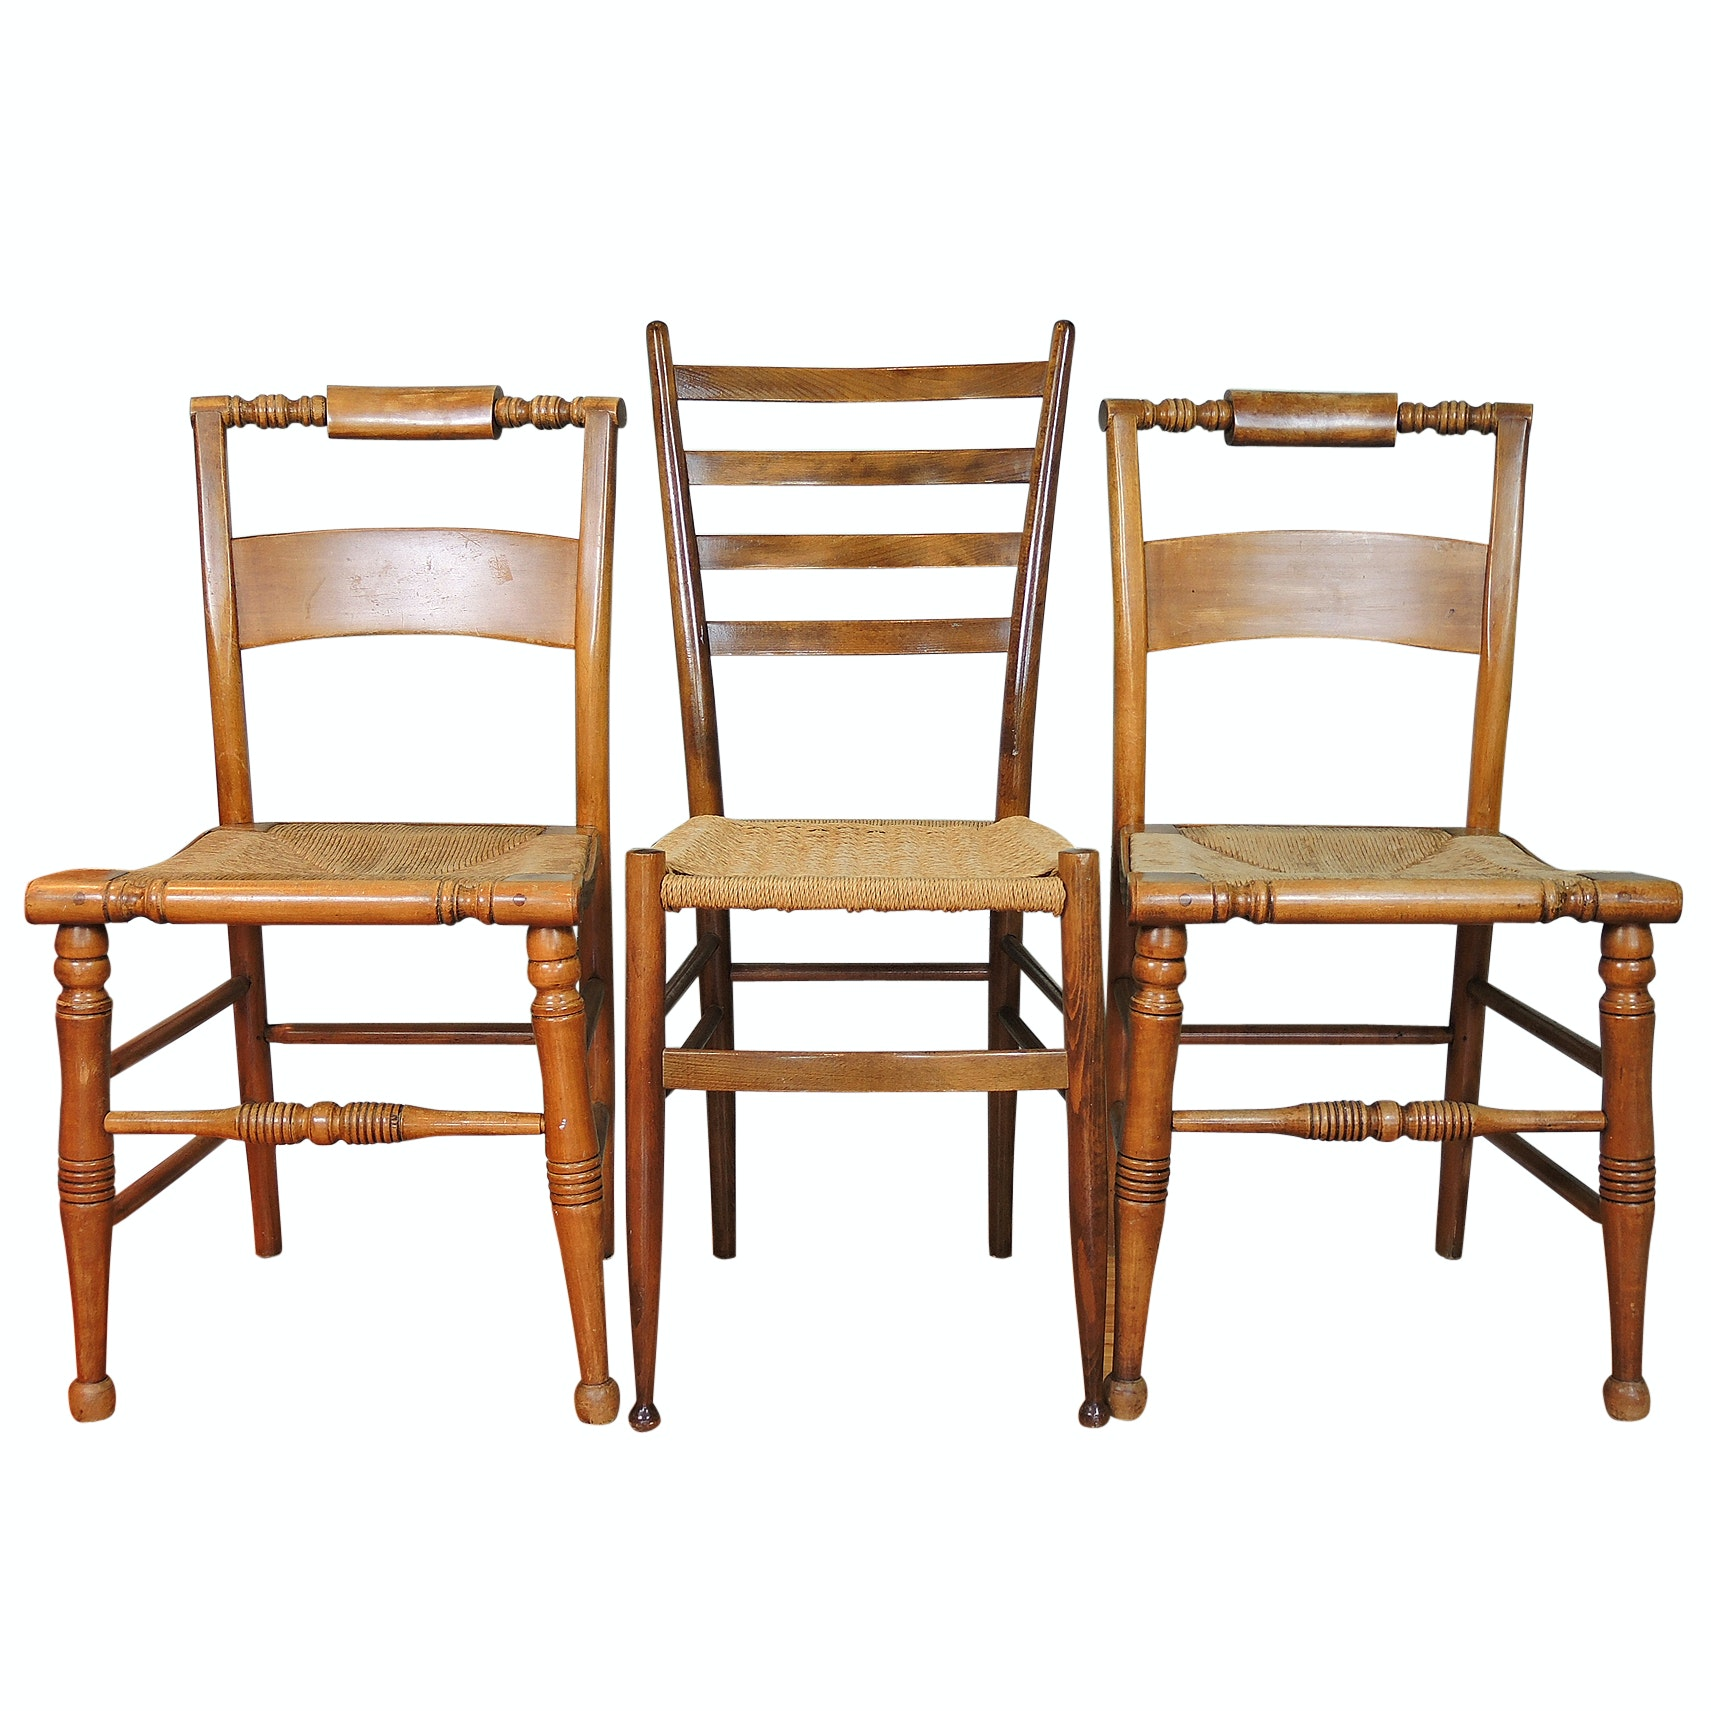 Ladderback and Spool-turned Chairs